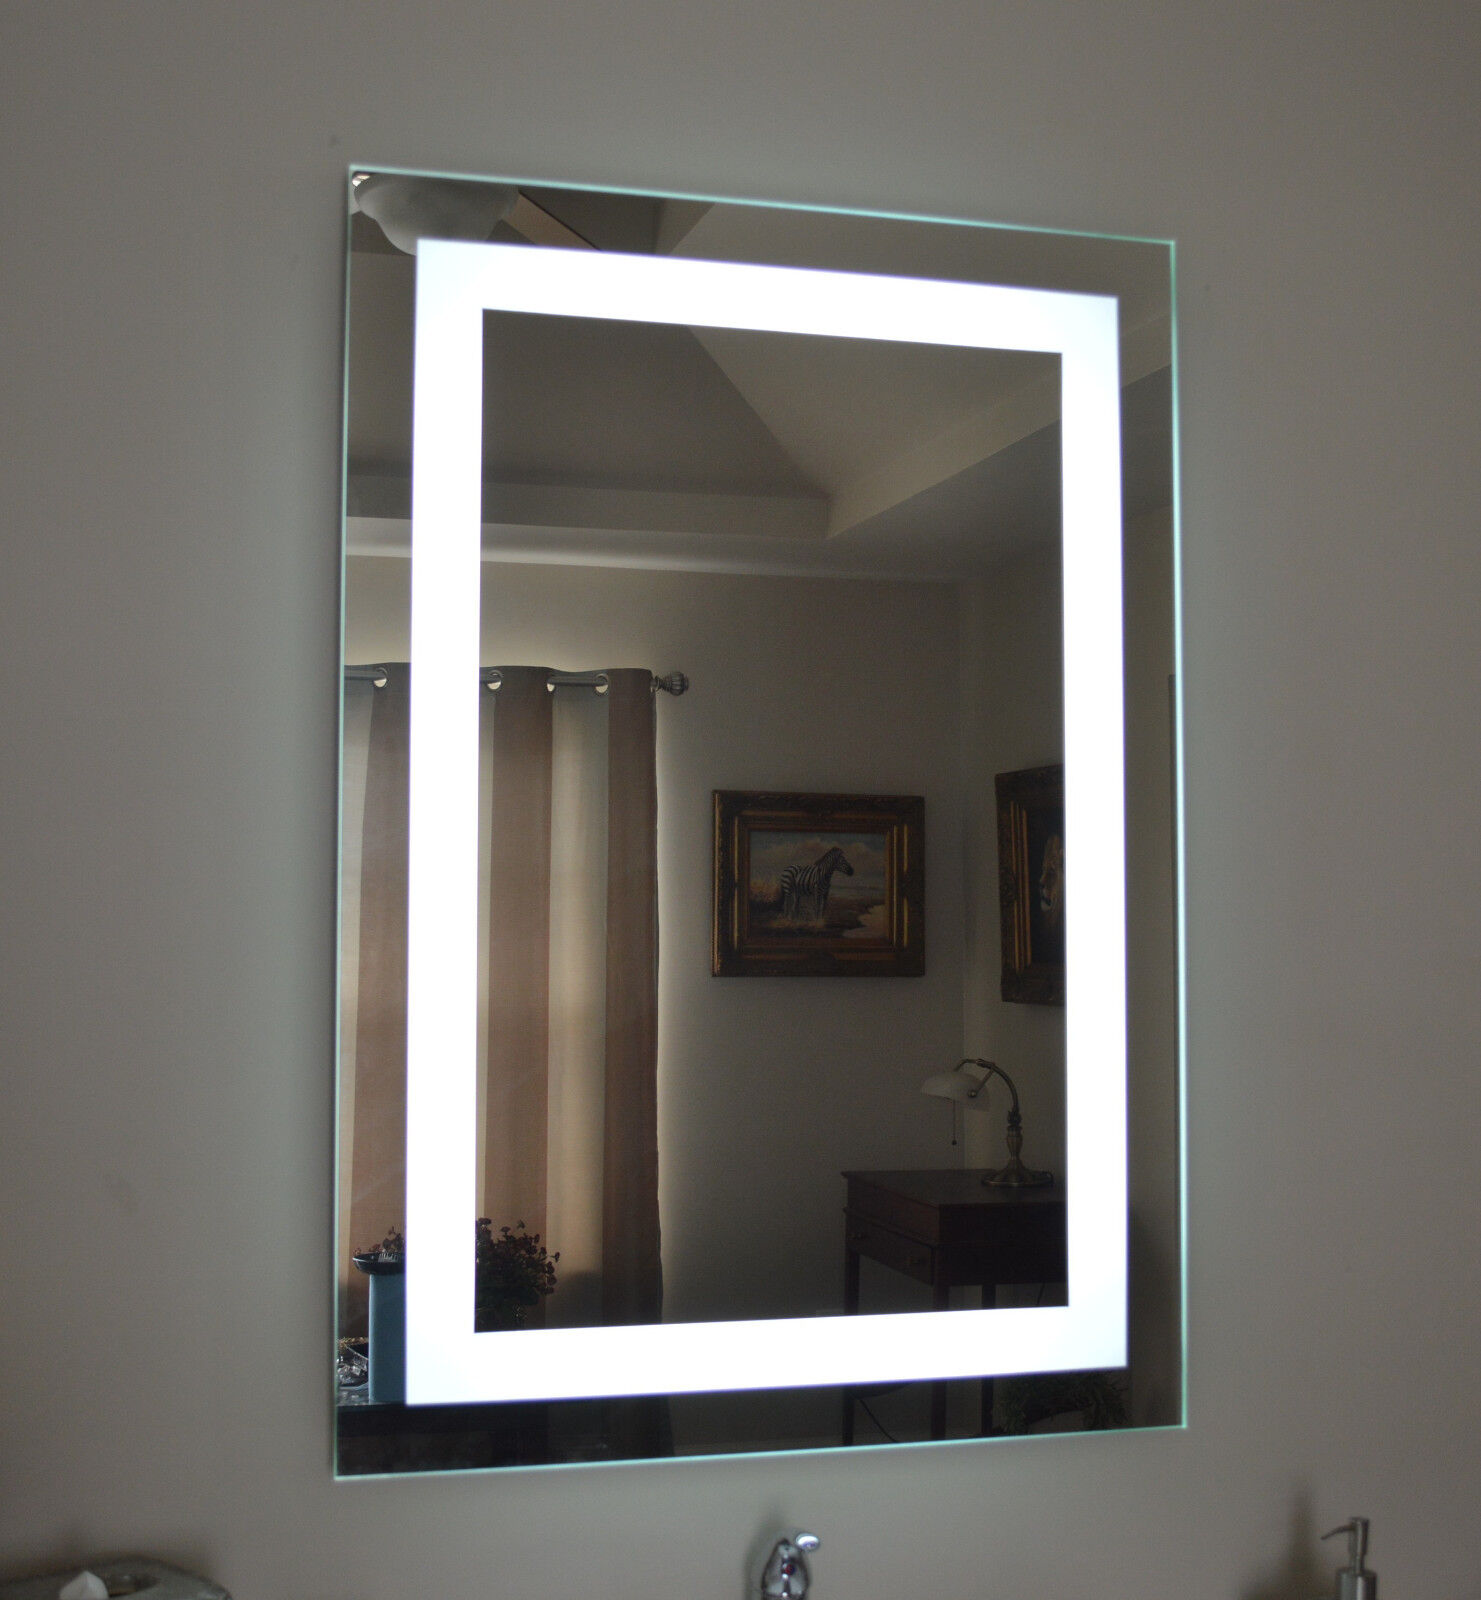 bathroom wall mounted mirrors lighted bathroom vanity make up mirror led lighted wall 17143 | $T2eC16ZHJGEFFm e7JHmBSGj22zKVg~~60 57